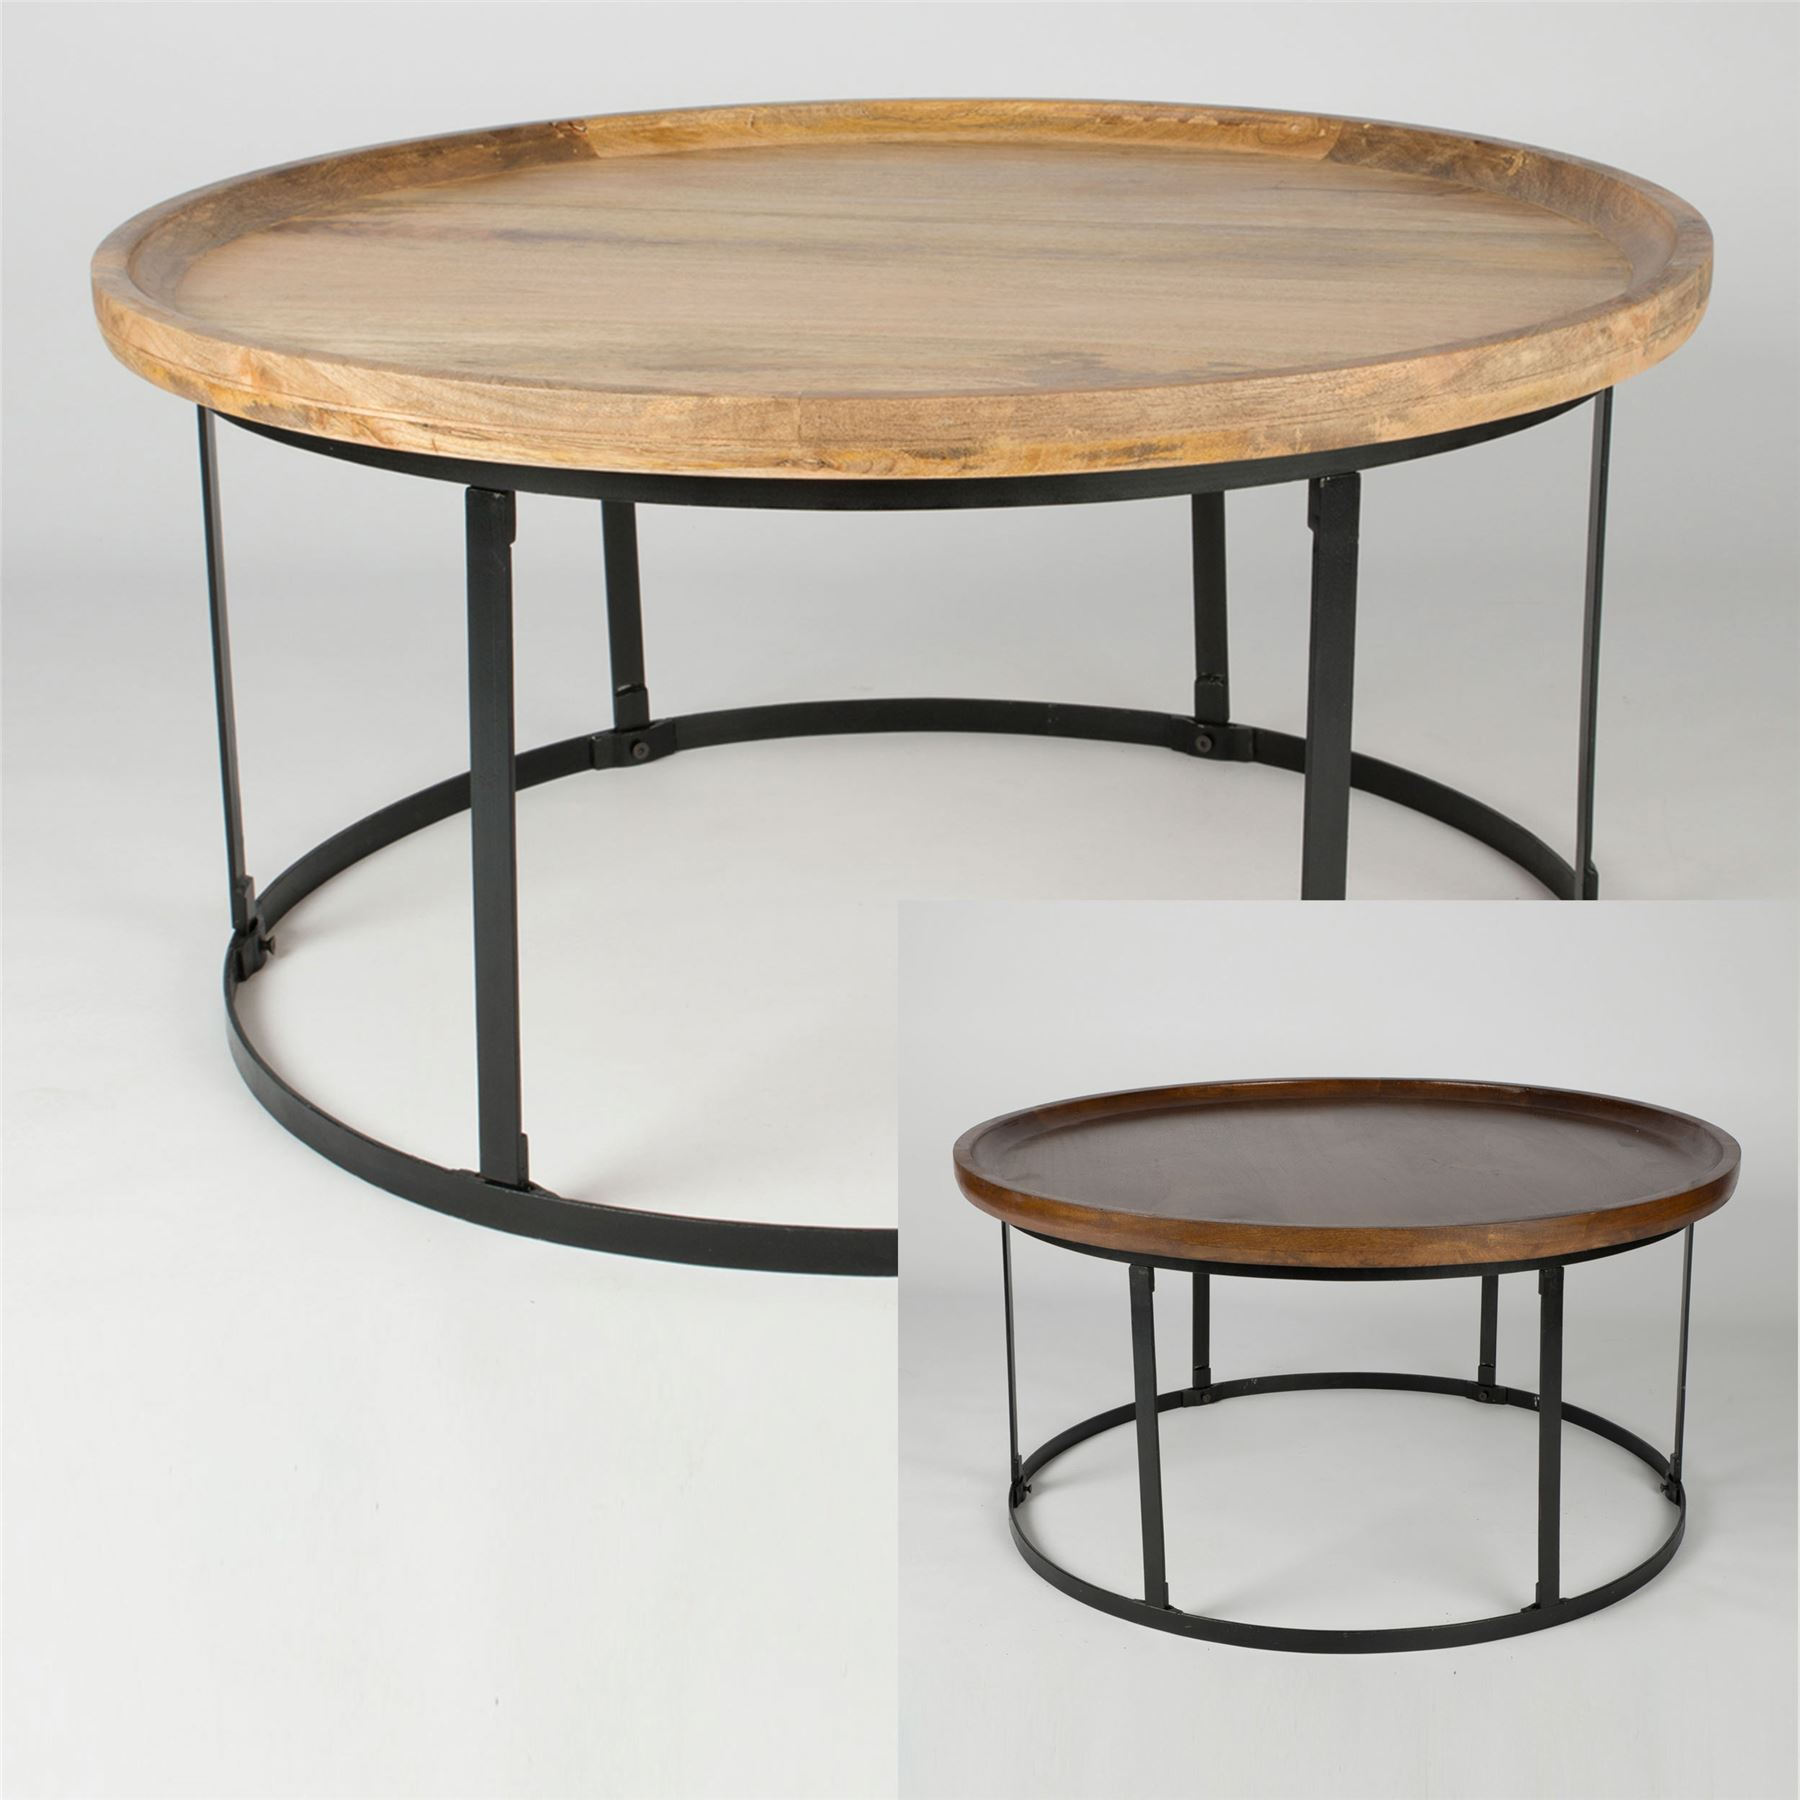 - Round Coffee Table With Steel Frame Support 100% Solid Mango